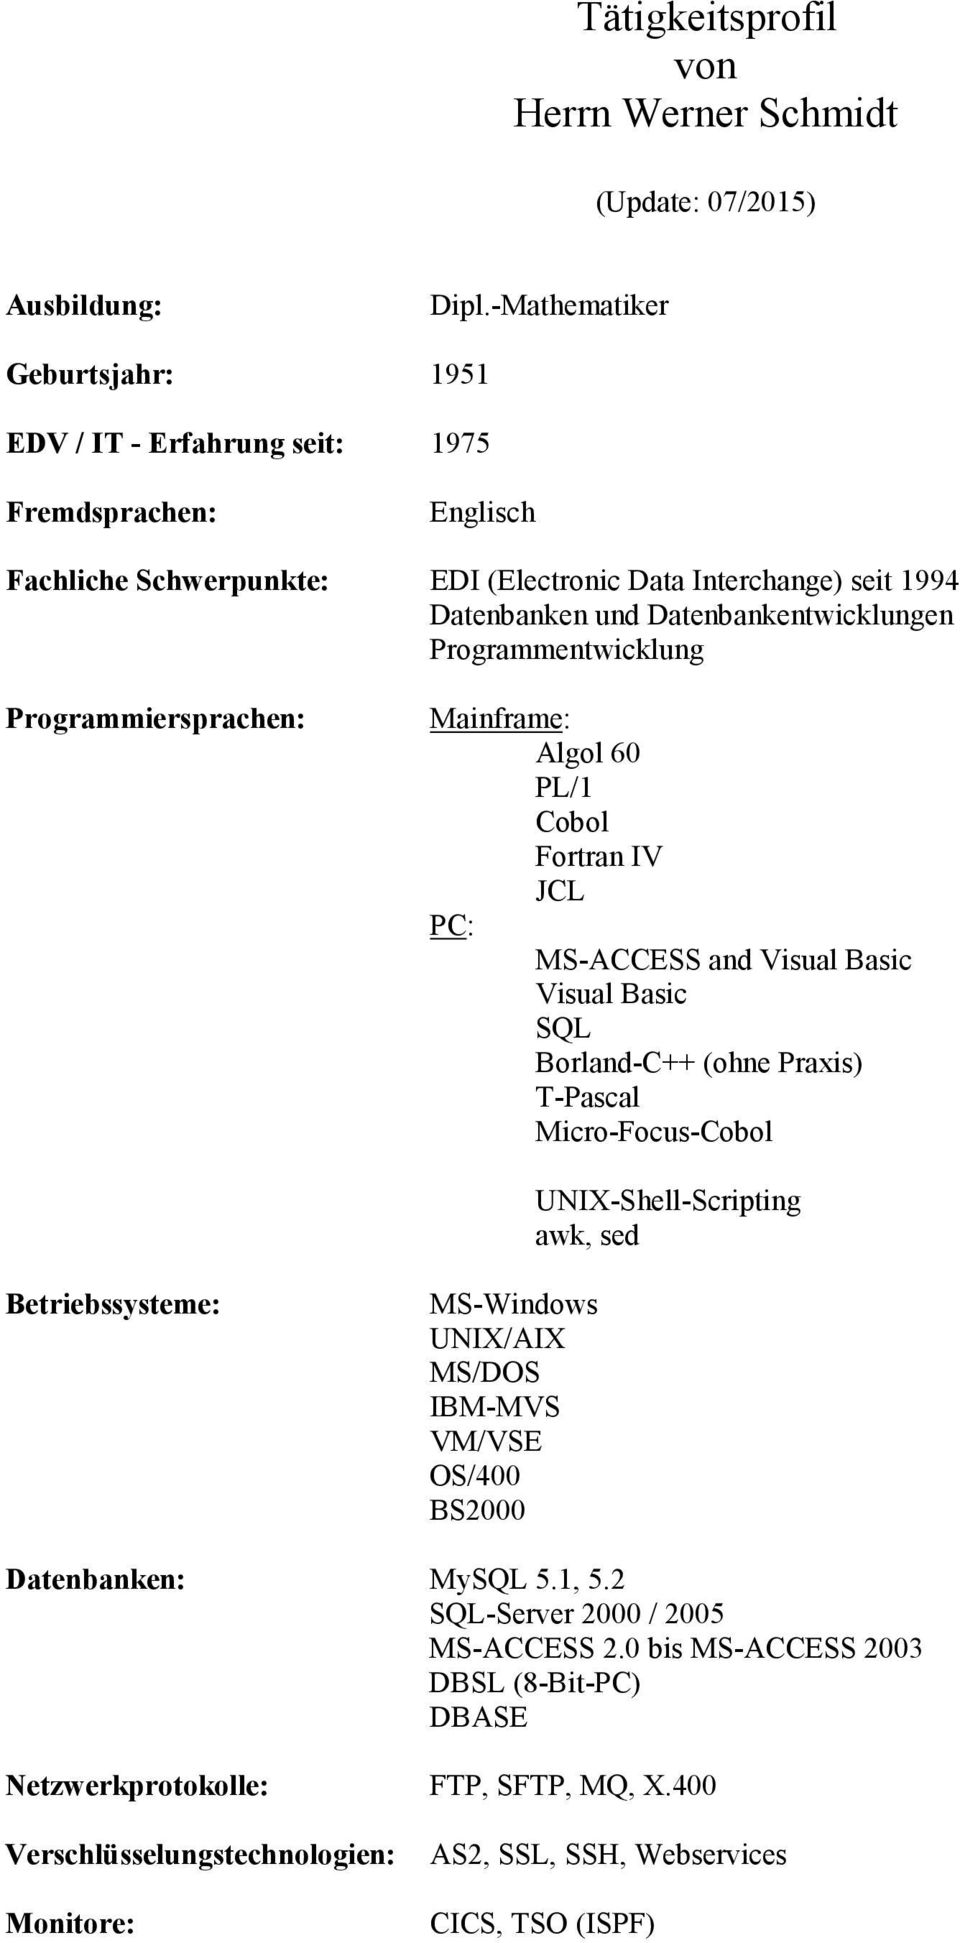 Programmentwicklung Programmiersprachen: Mainframe: Algol 60 PL/1 Cobol Fortran IV JCL PC: MS-ACCESS and Visual Basic Visual Basic SQL Borland-C++ (ohne Praxis) T-Pascal Micro-Focus-Cobol